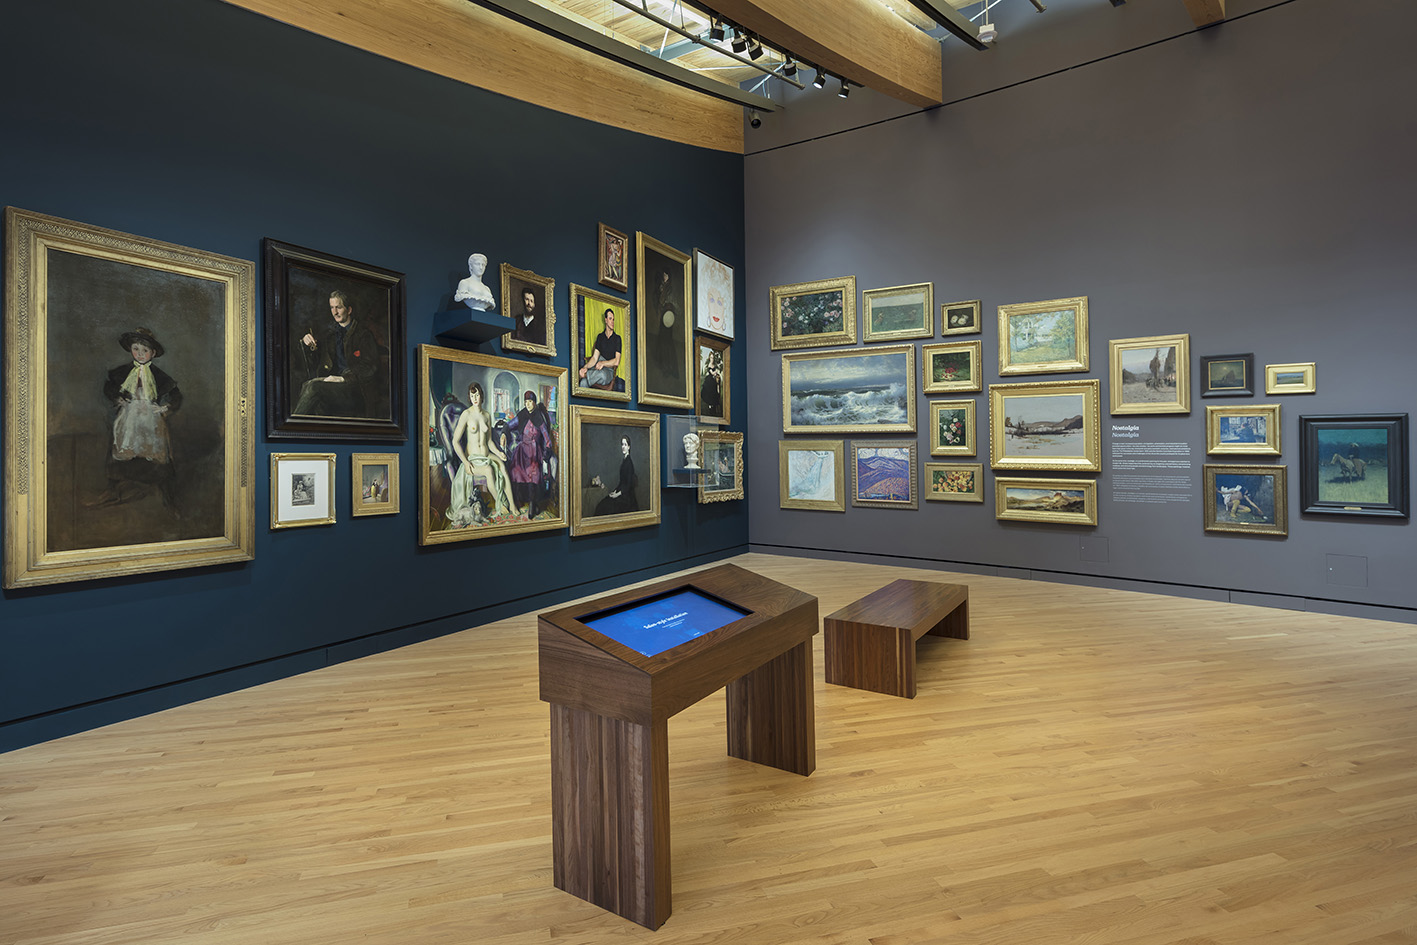 Salon style hang in Early American Gallery.Image Courtesy of Crystal Bridges Museum of American Art